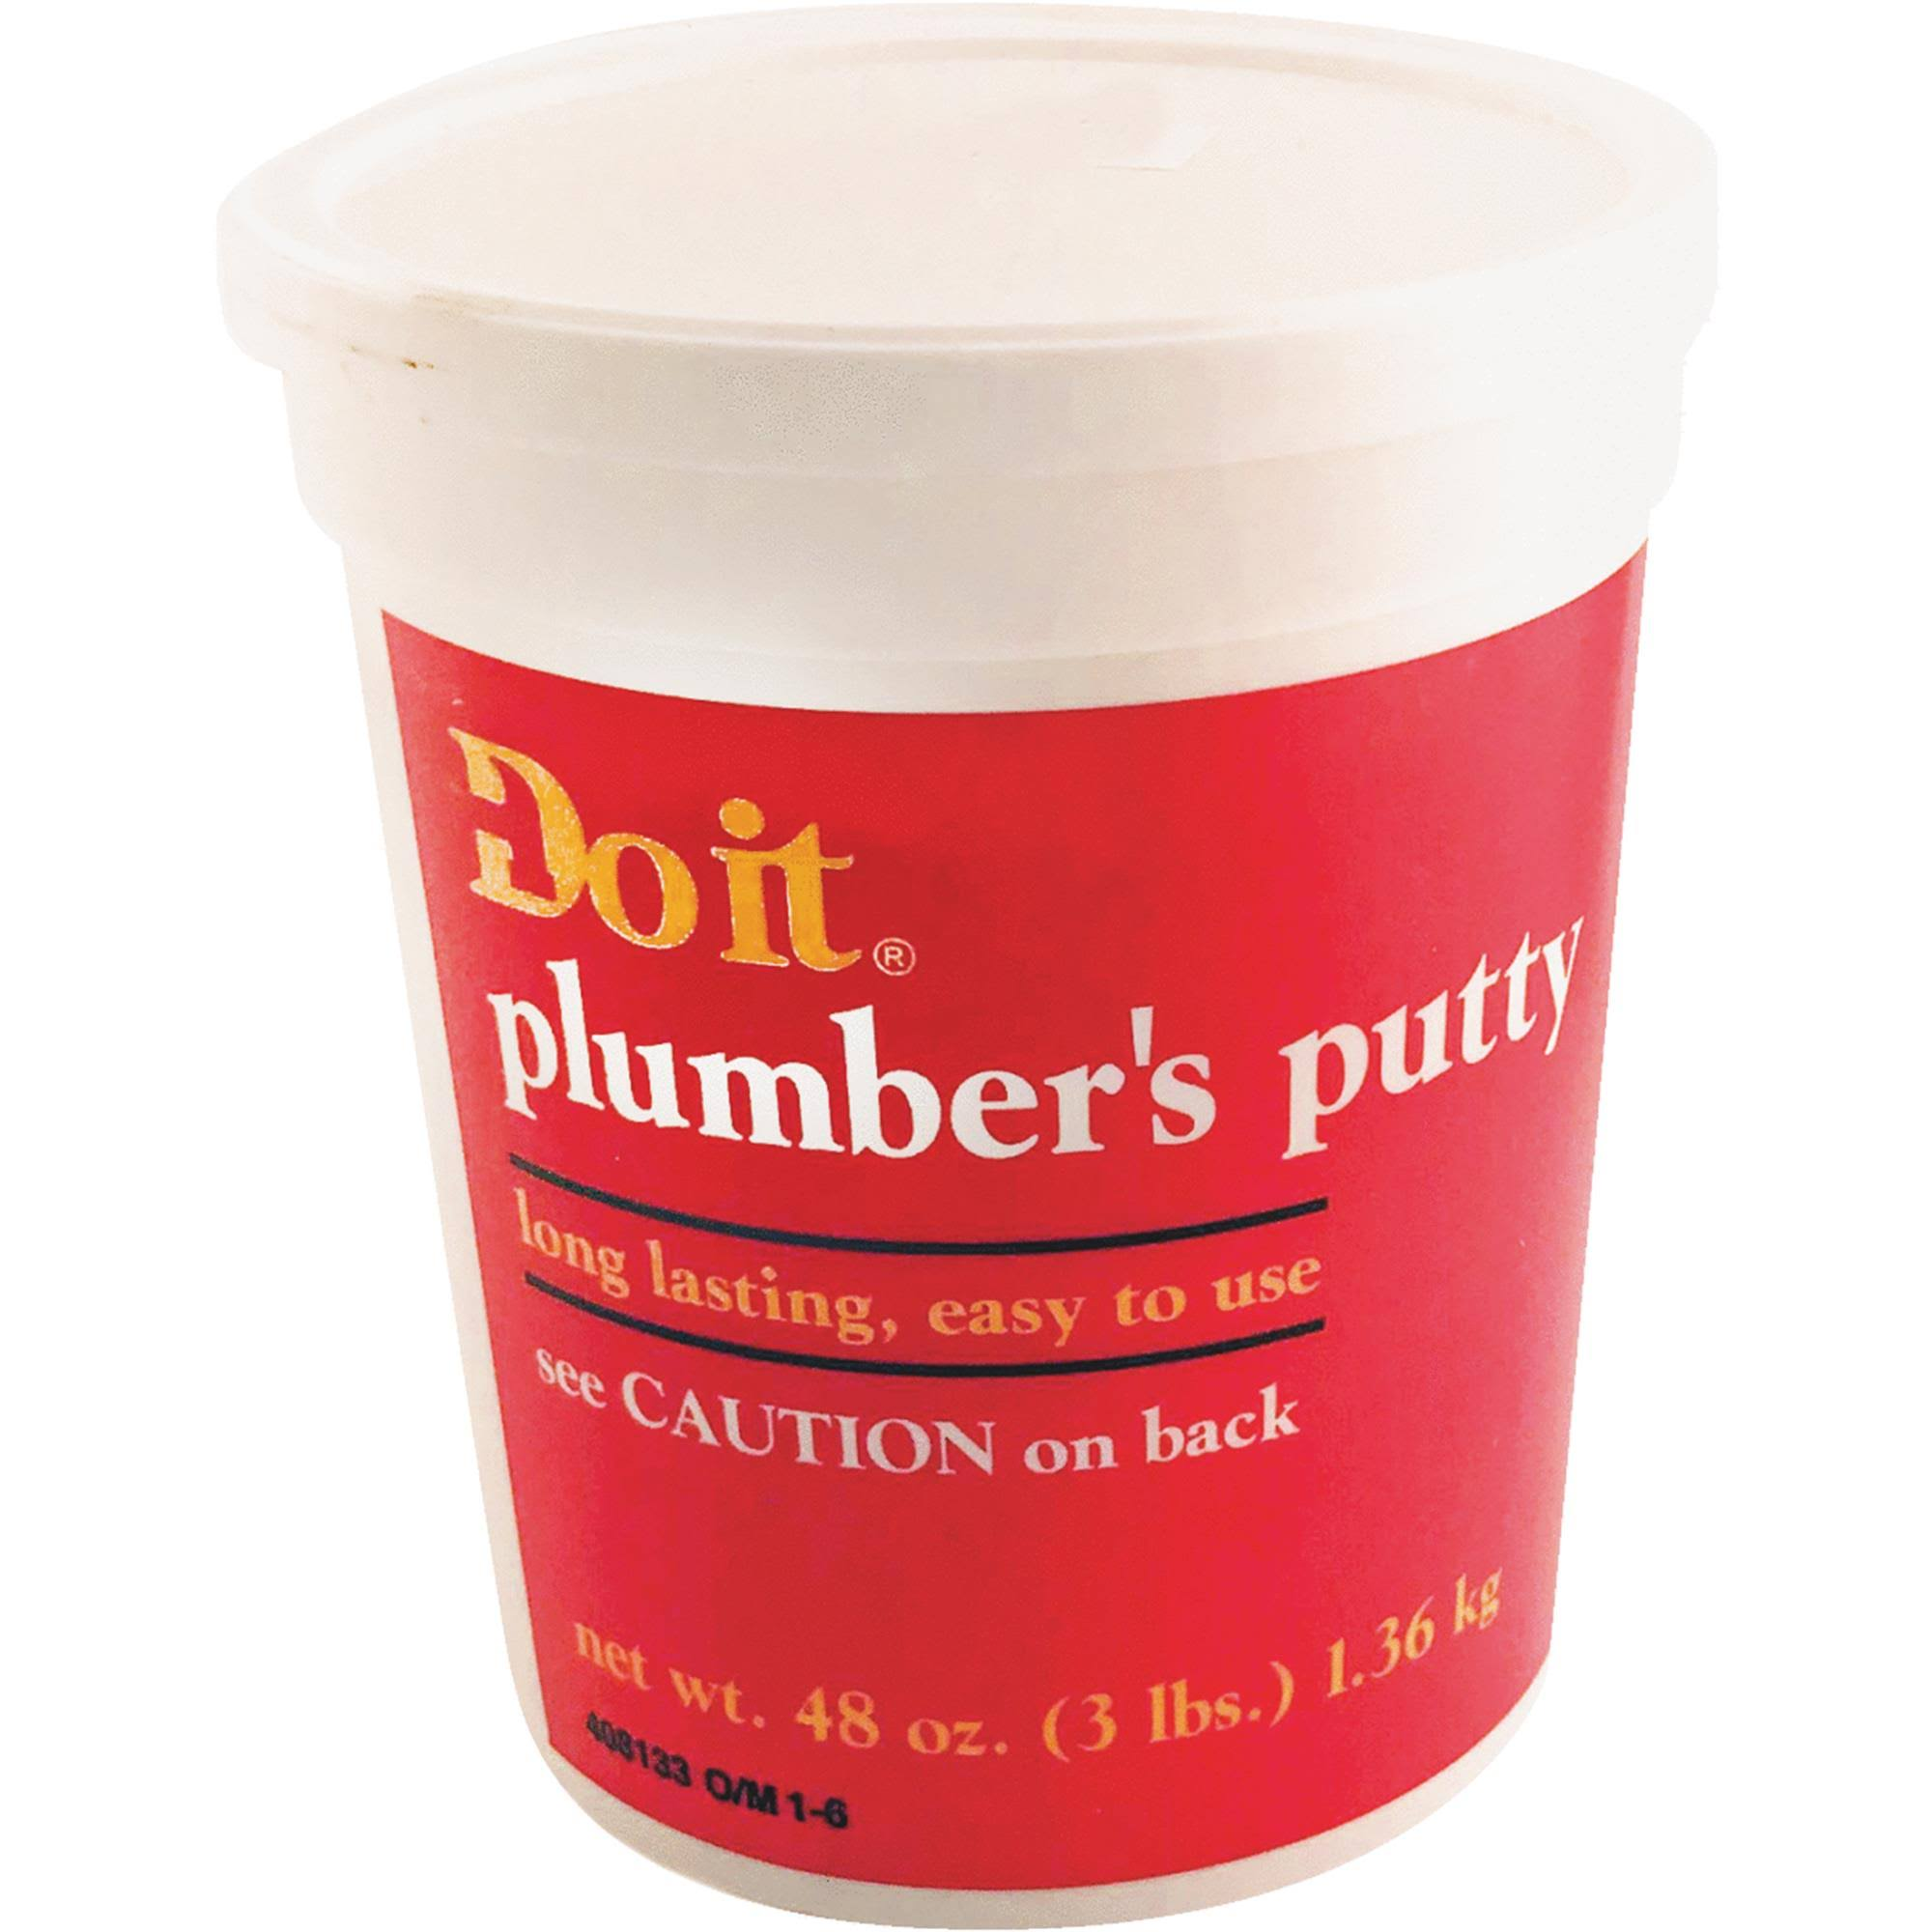 Do it Plumber's Putty - 3lbs